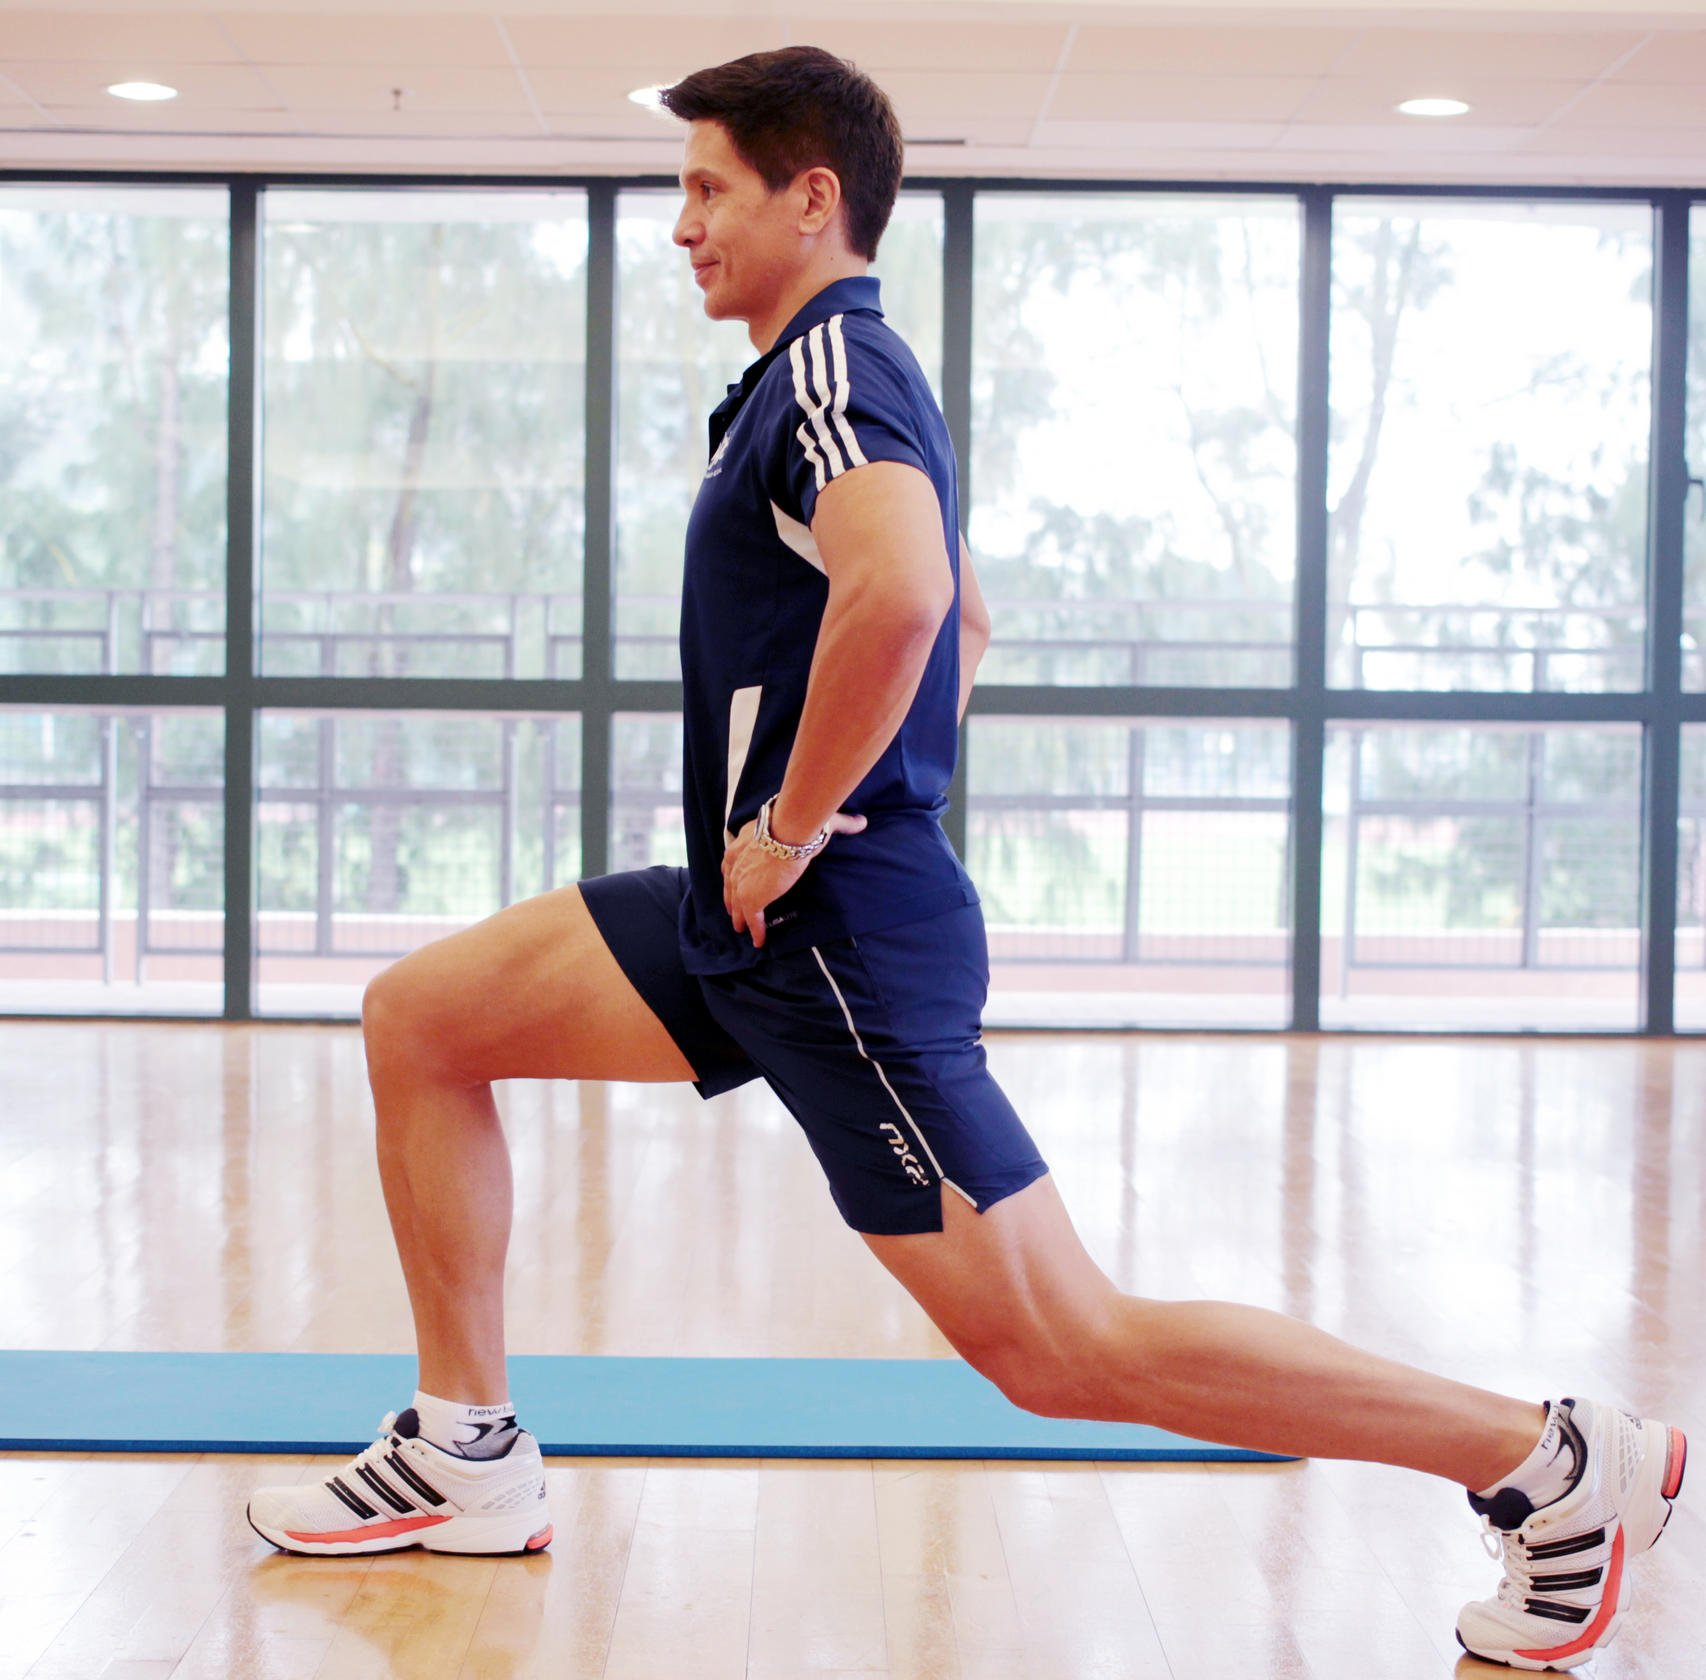 Lower Back Pain: Exercise Circuit